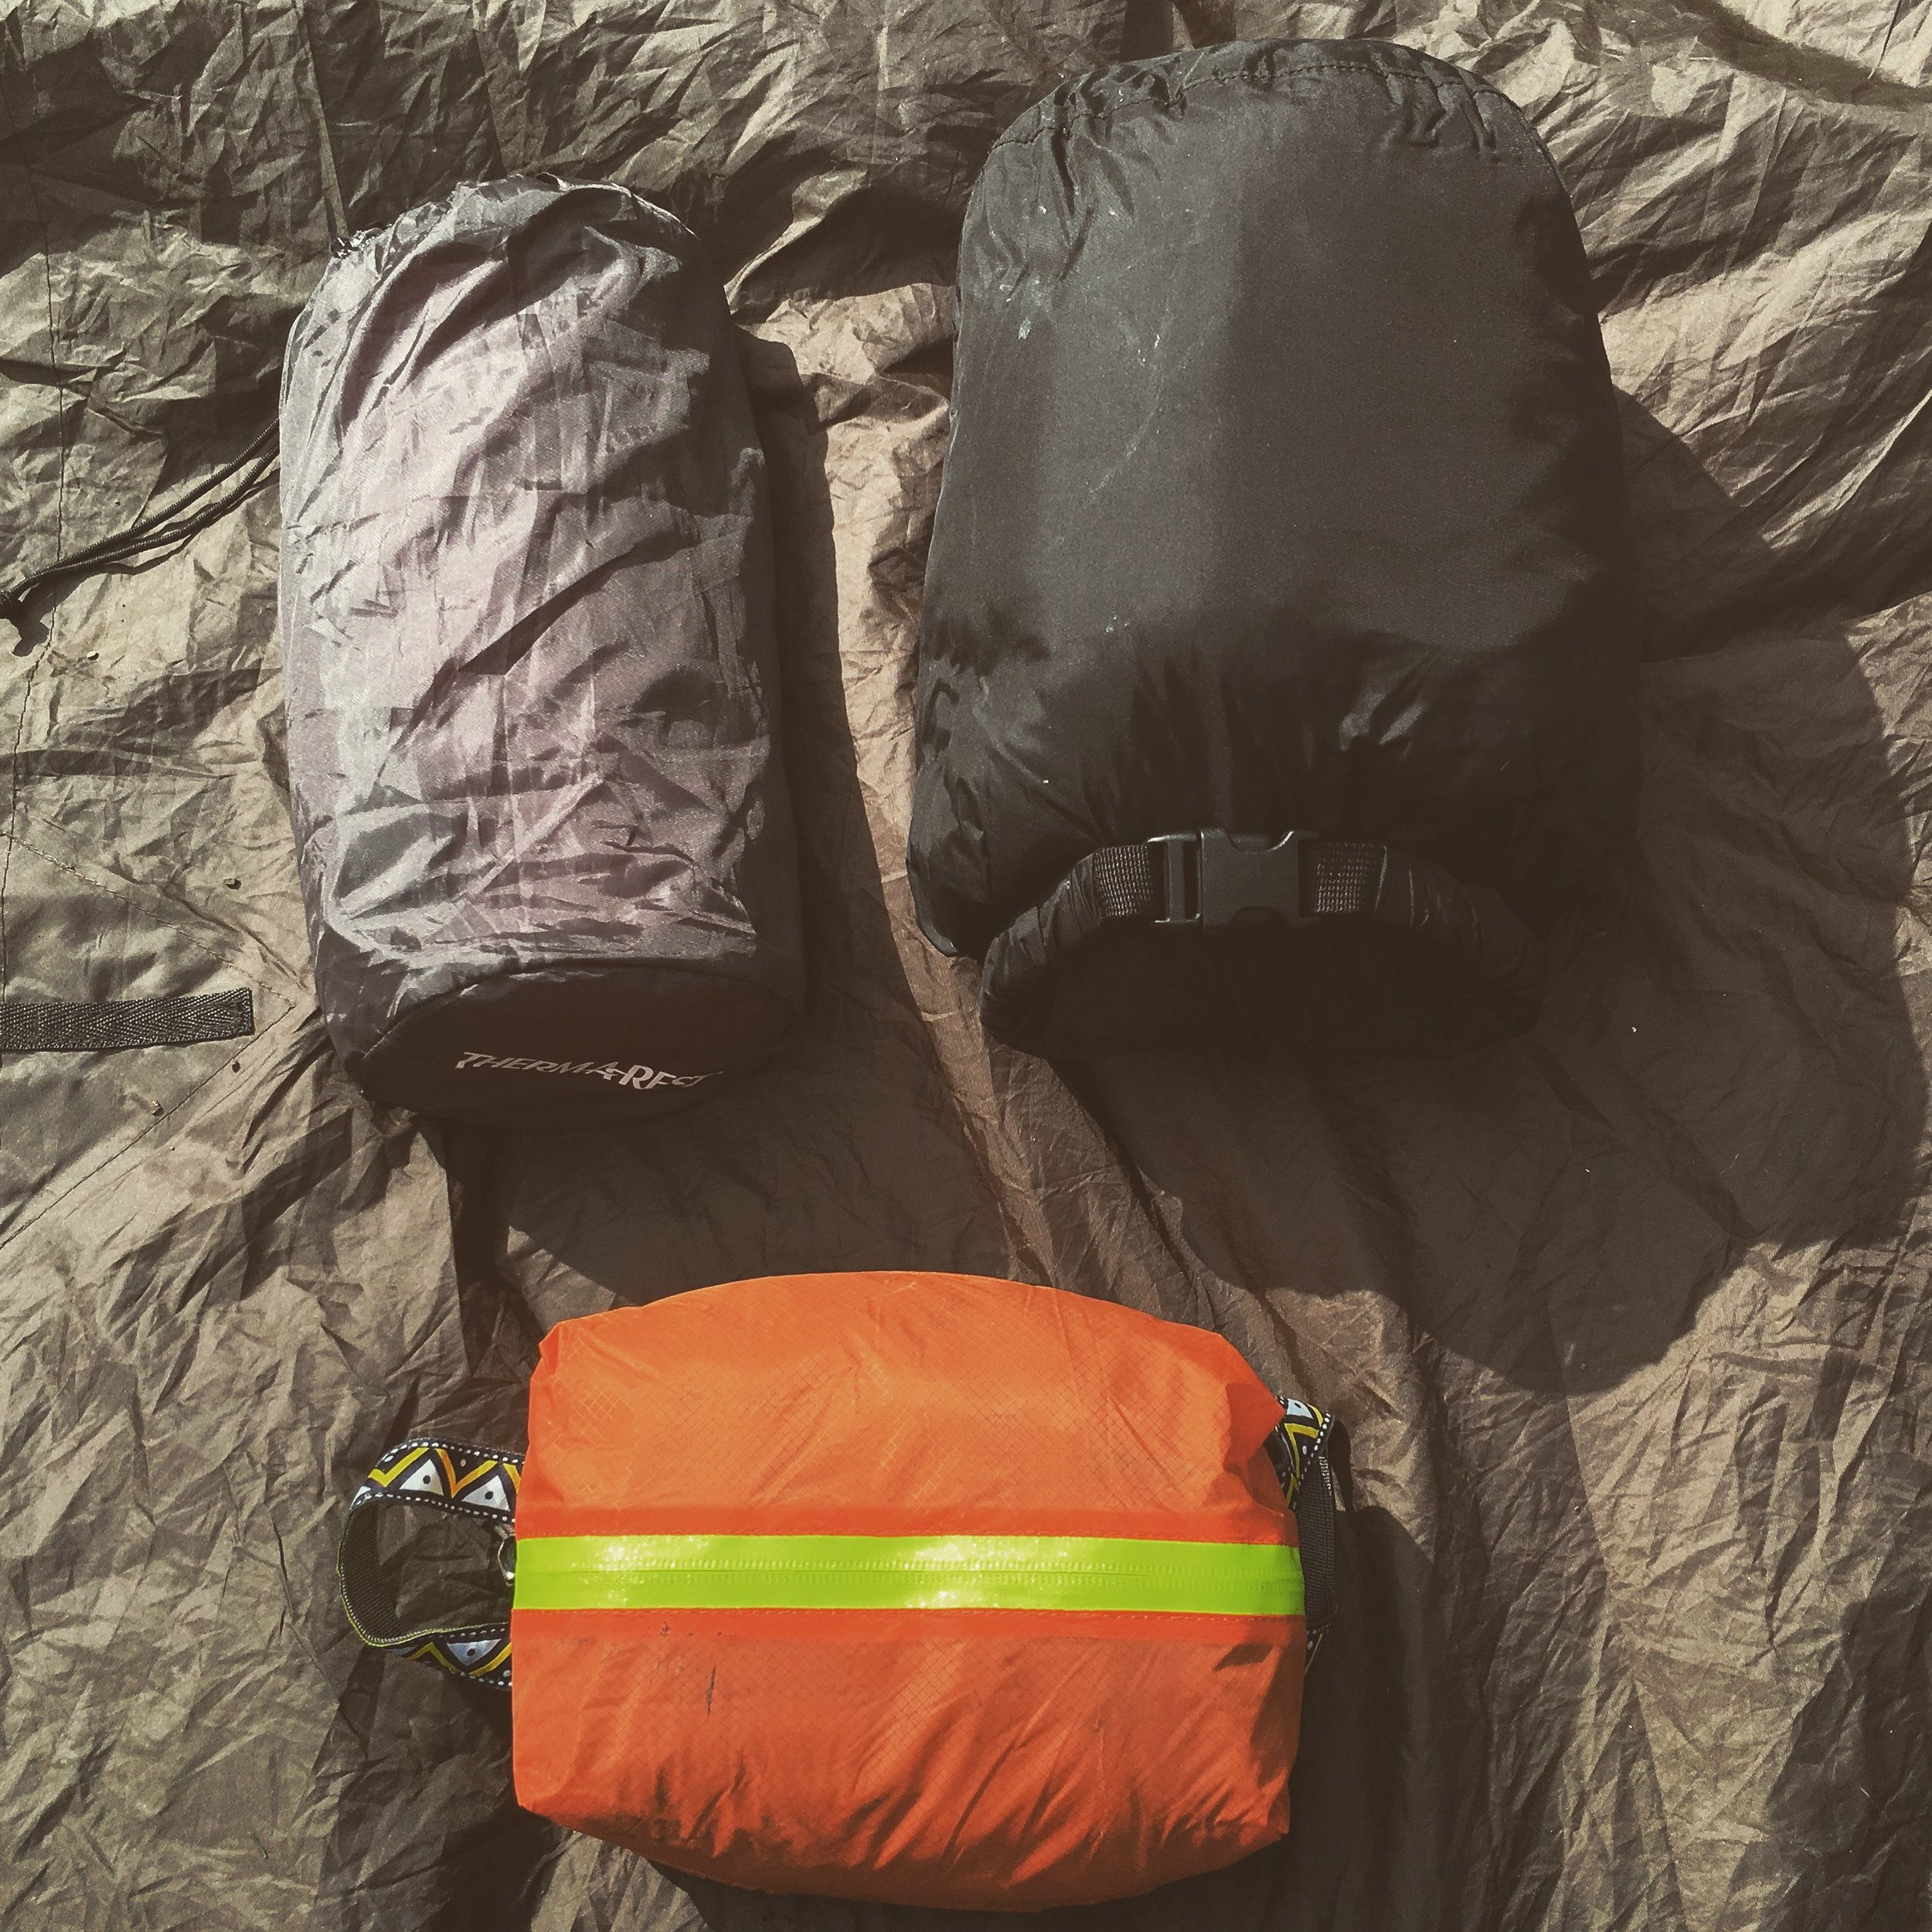 Bed Bag: This dedicated dry bag stows my sleeping gear. I carry a Mountain Equipment Down winter down bag from October, inside its own dry bag (that's three dry bags deep into my kit, within the Timber Cruiser!) It packs small and light, and being down responds better if it's a little warmer than expected. My mat is a Thermarest Prolite 3/4 length mat, very durable and compact it blows up nice and thick for a warm comfy nights sleep. I carry a puncture inside it stuff sack for accidents. The orange bag contains my sleeping clothes, as Mors Kochanski is often quoted: pile lots under you, lots over you and little on you. It's sound advice indeed, as insulation comes from trapped dry air, allow your sleeping bag and mat to do their job. On my person I always strip away my day clothes as any sweat or damp from the outside never wants to wind up in your sleep system. In the bag I have a light merino top, wool hat and buff, and thin wool gloves as well as wool socks. These are all I sleep in even when it's very cold, if I get colder still I'll pull my Keela jacket from my ditch kit  over  my sleeping bag to help trap more air. Further into winter I may include a pair of thermal leggings as well.